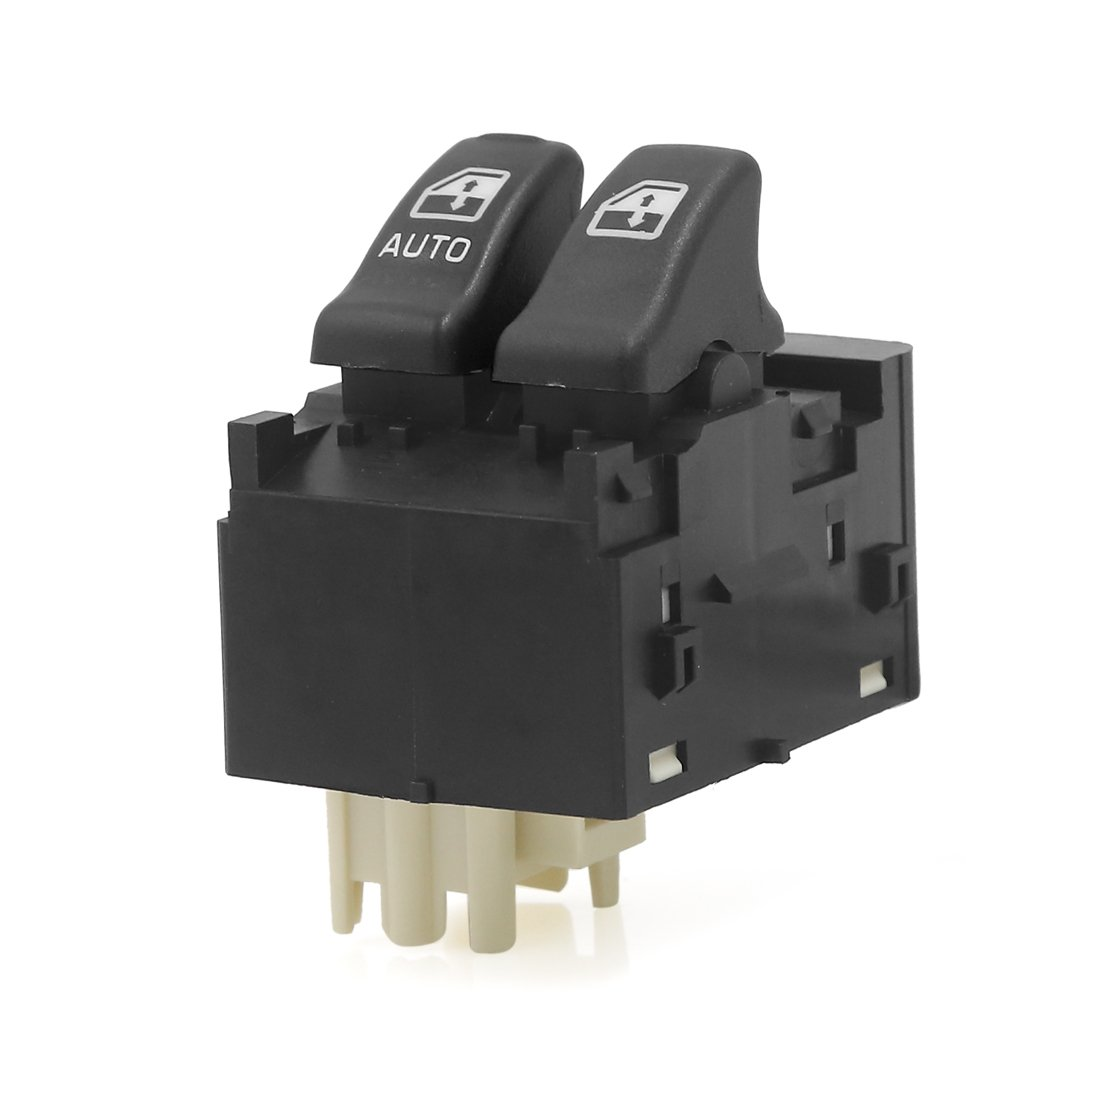 uxcell Front Left Driver Side Power Window Switch 10387305 for Venture Montana Chevrolet Pontiac a16090500ux0527